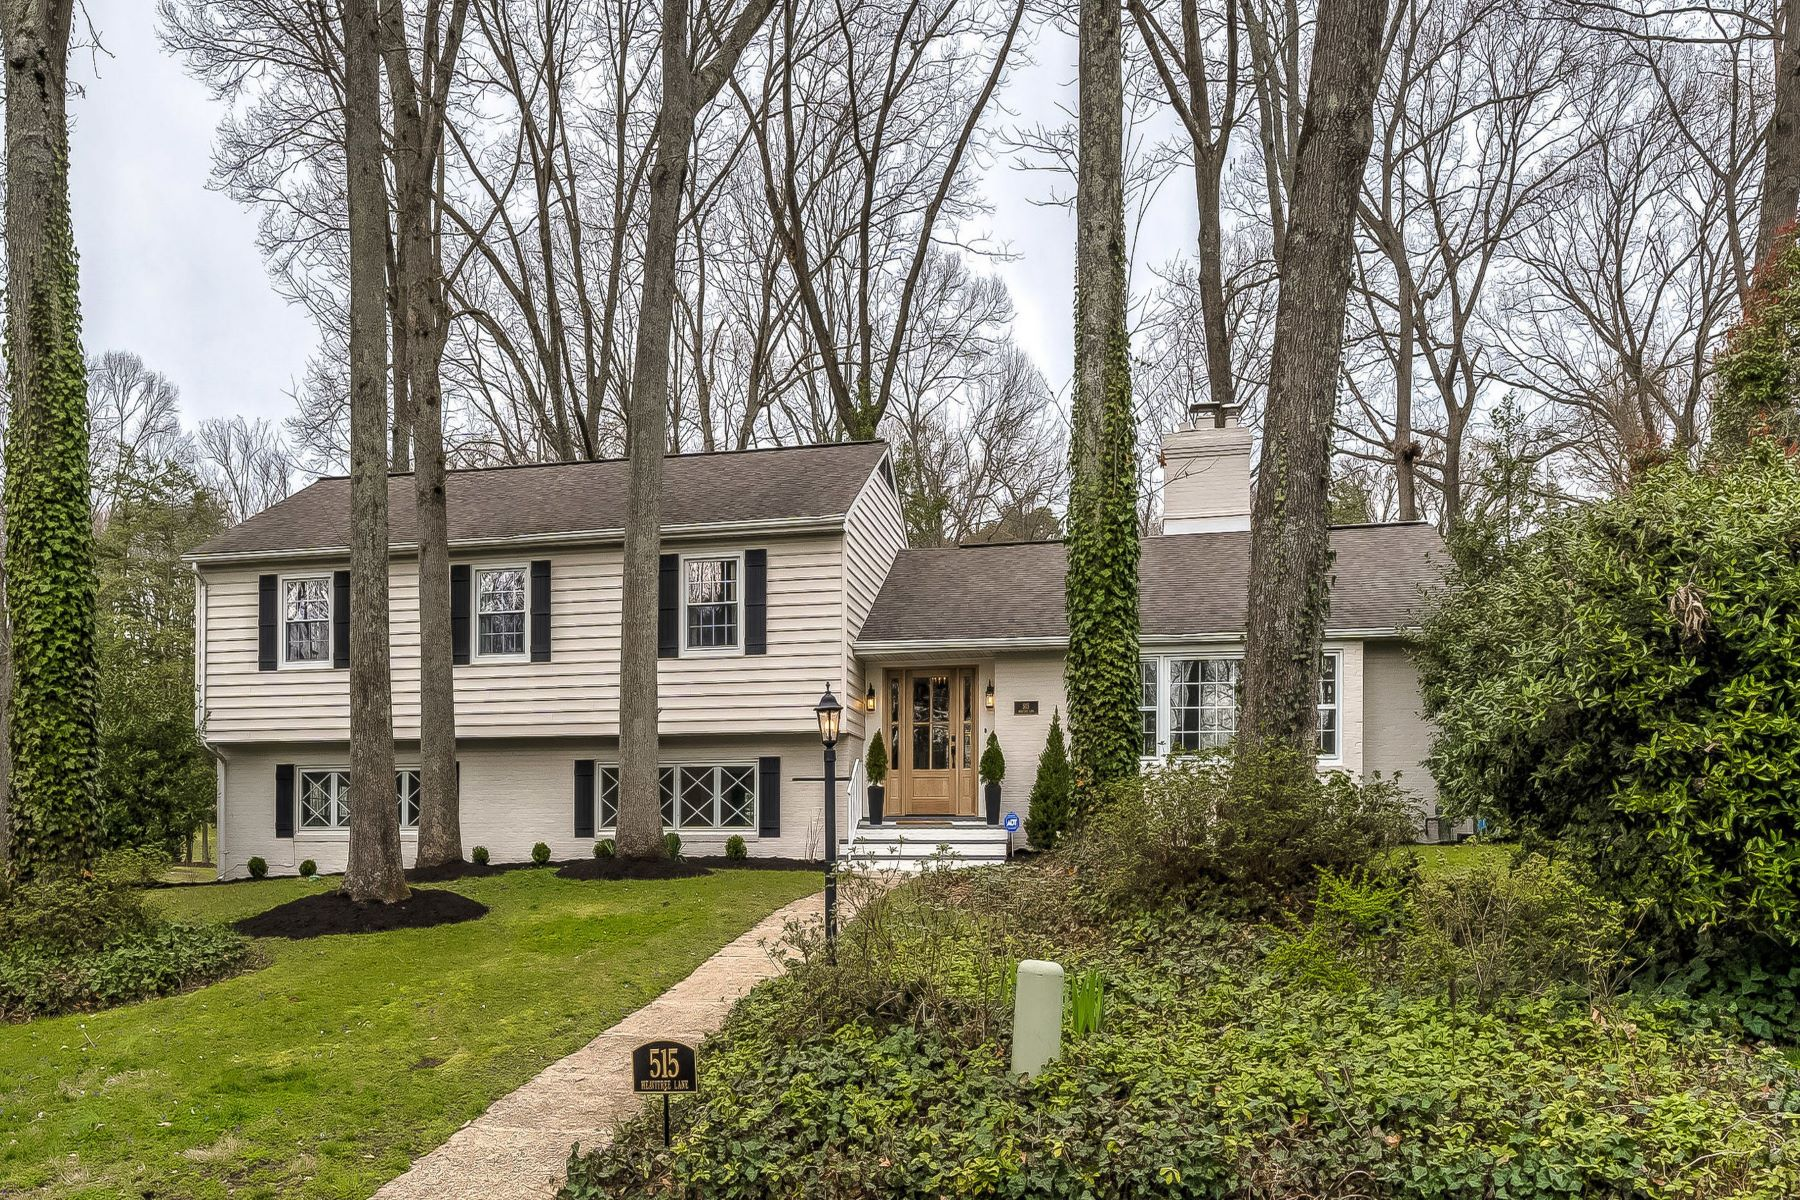 Single Family Homes for Sale at Chartwell on the Severn Split Level 515 Heavitree Lane Severna Park, Maryland 21146 United States